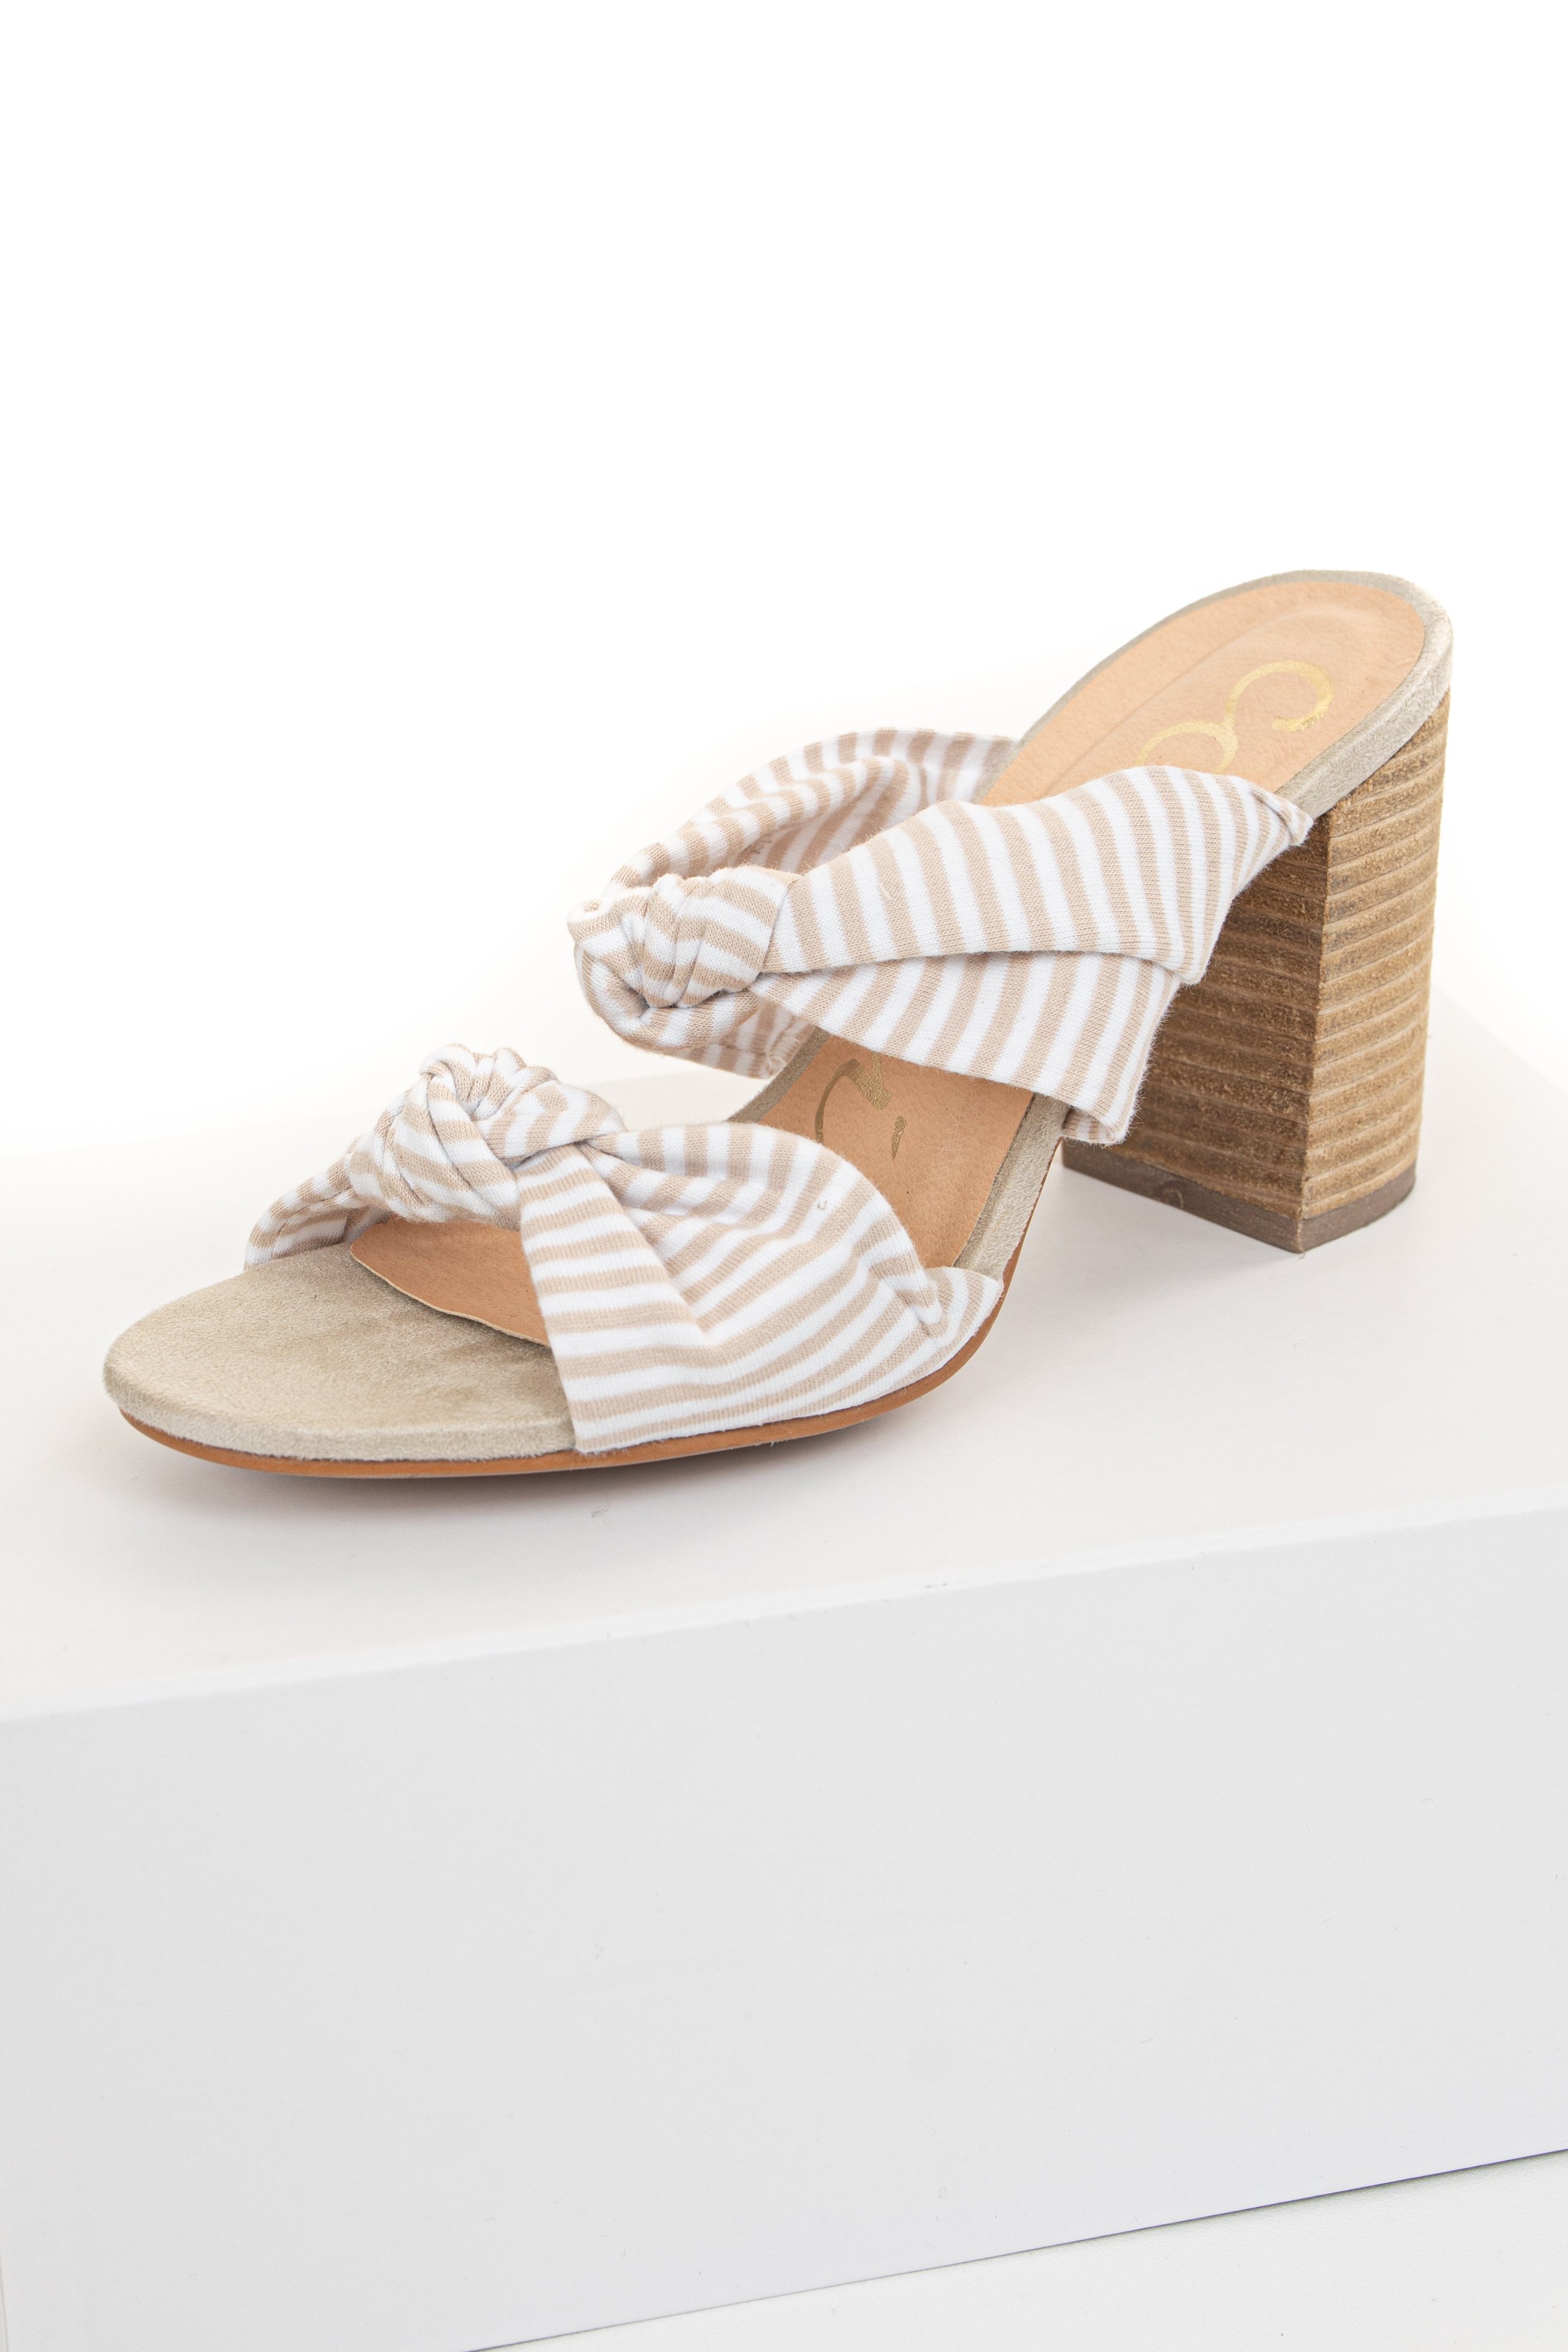 Beige and White Stripe Print High Heels with Knot Details